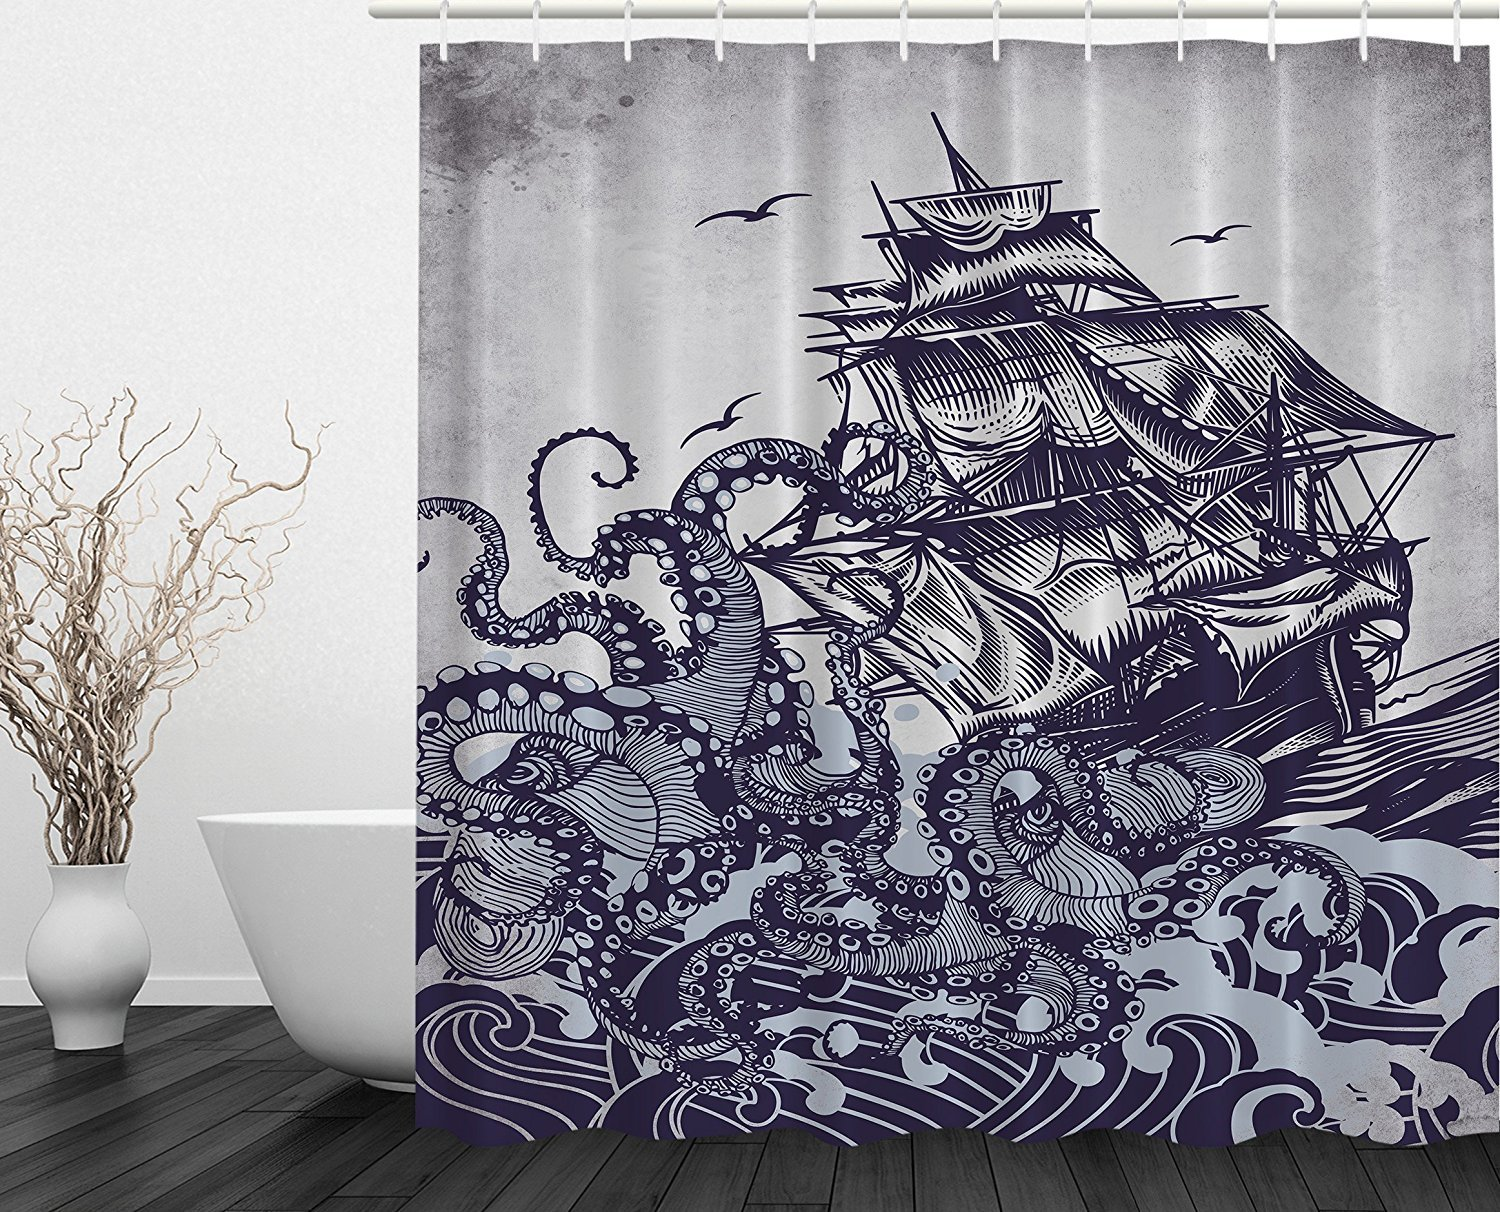 Storage bath accessories amp bathroom organizers the container store - Sail Boat Waves And Octopus Old Look Home Textile European Style Bathroom Decoration Luxurious Cozy Lovely